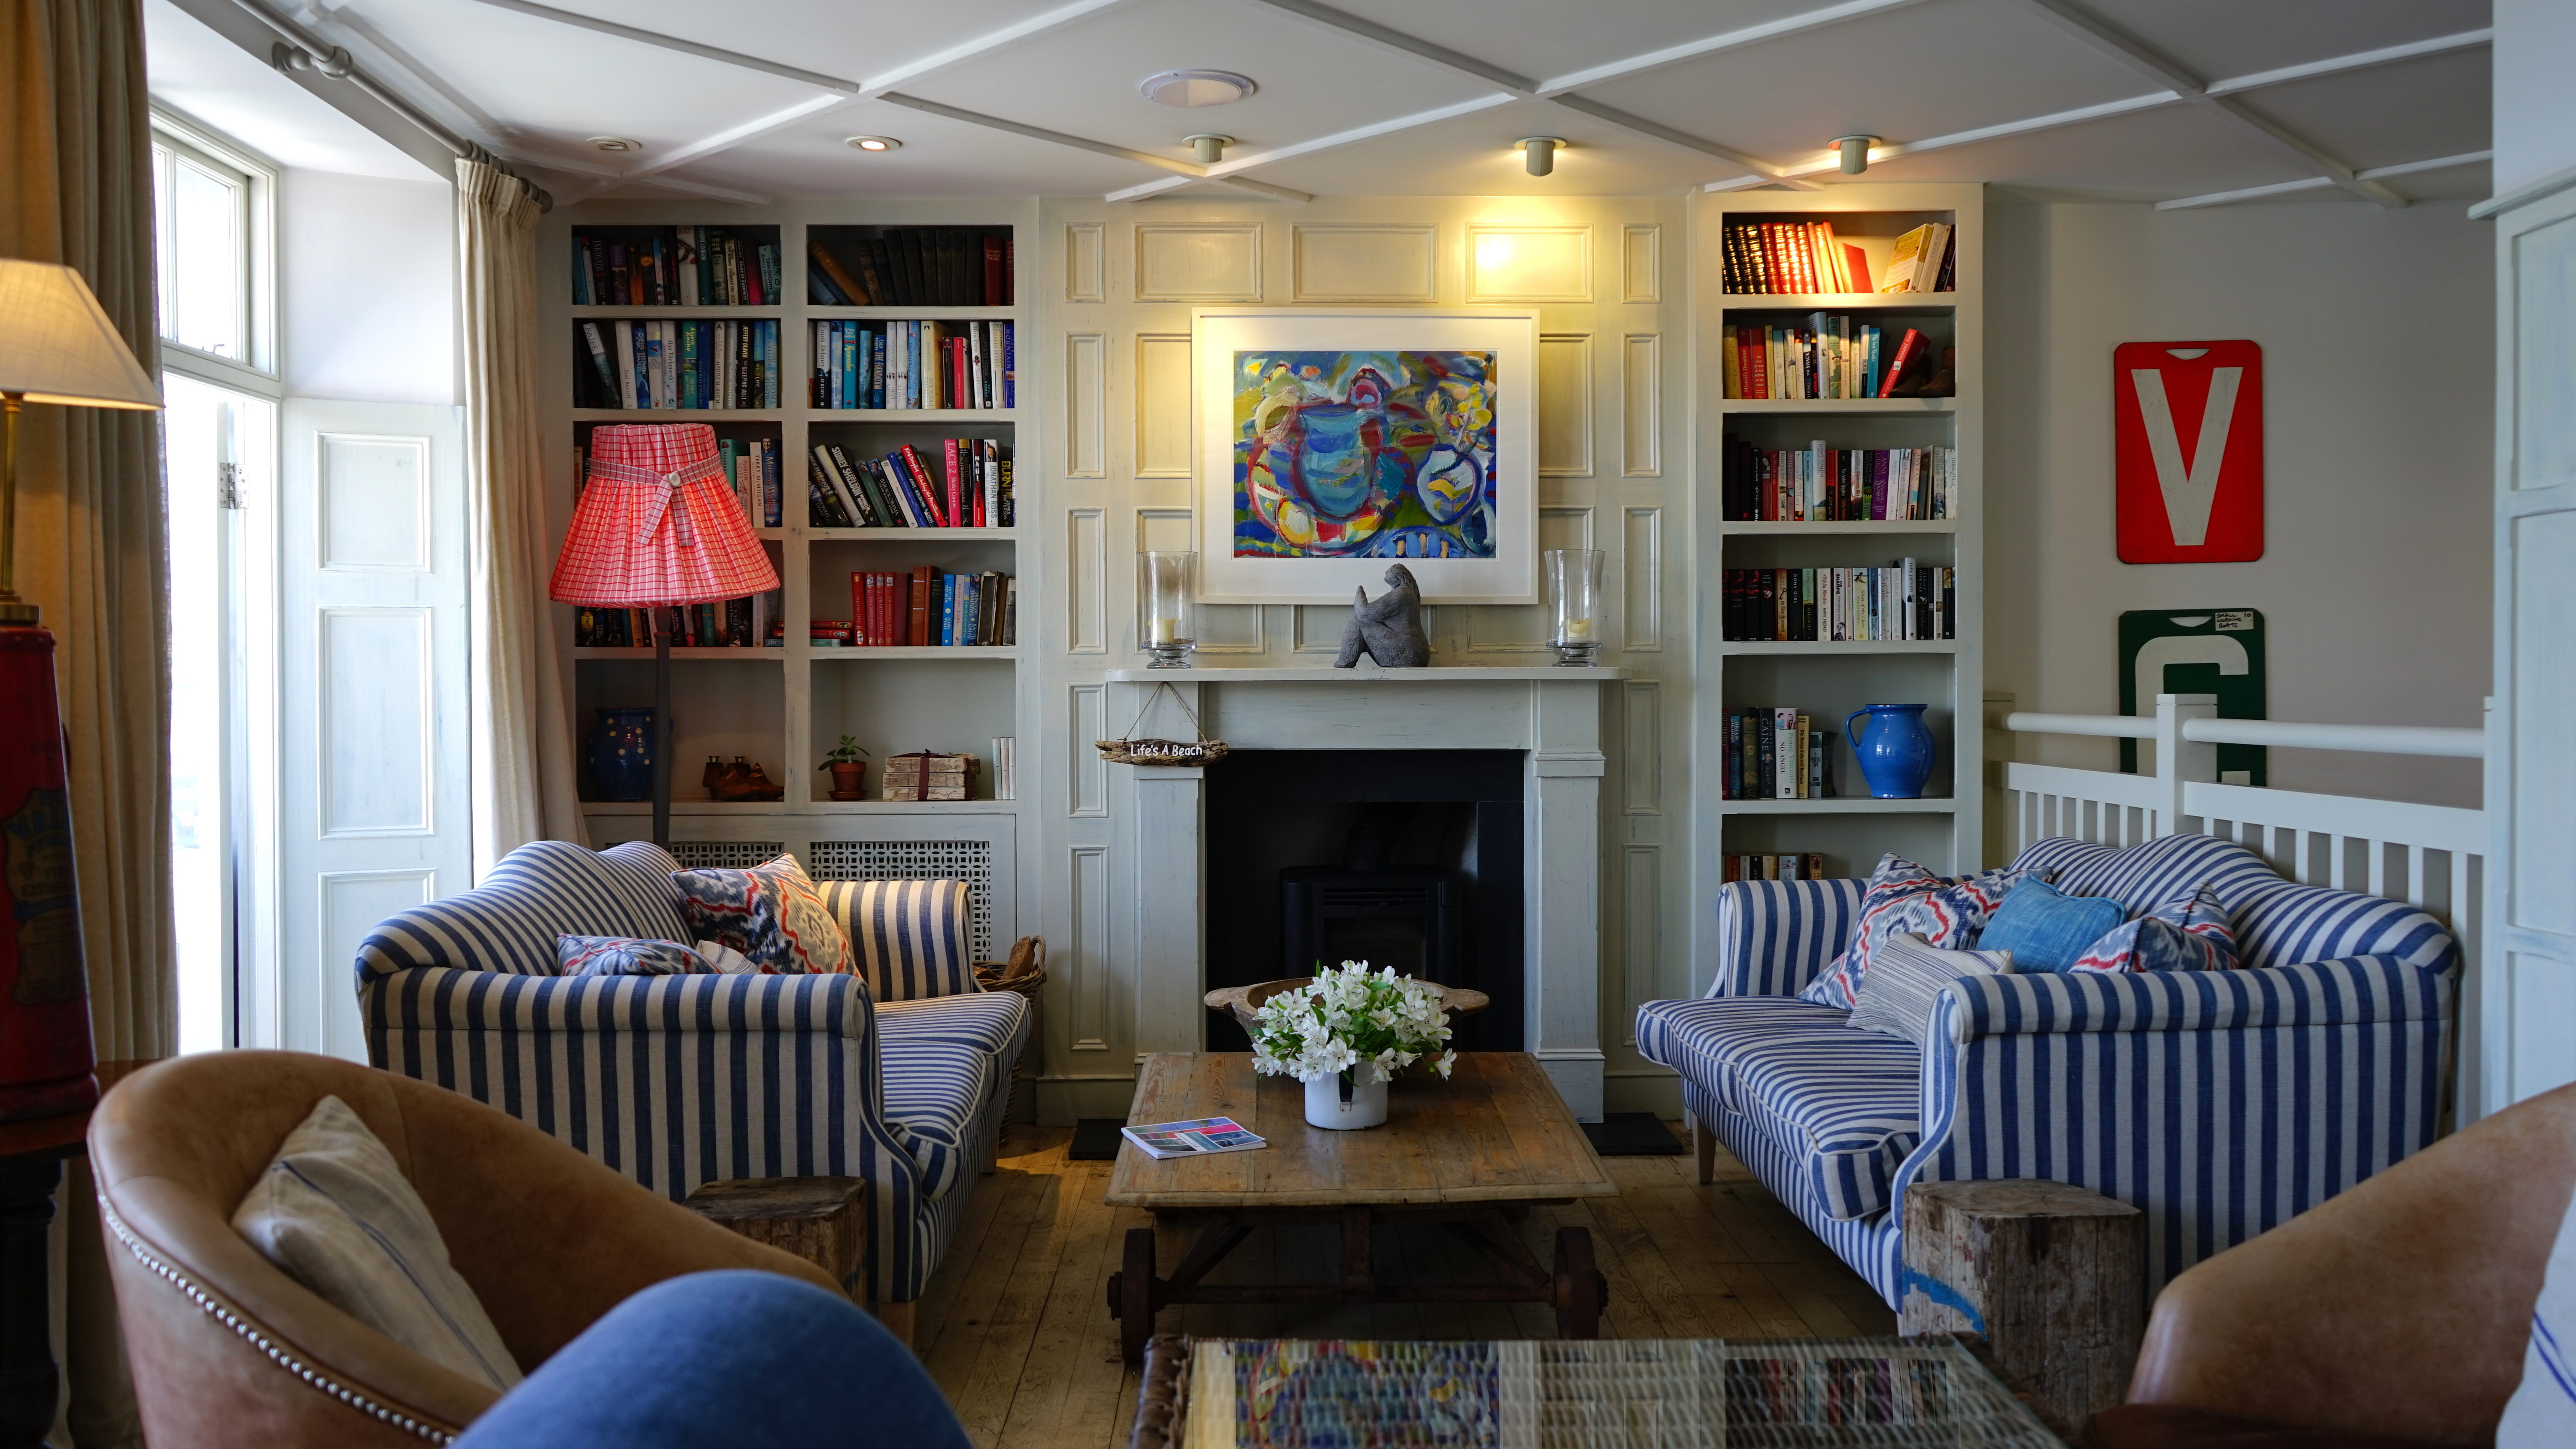 6 home trends that need to go away